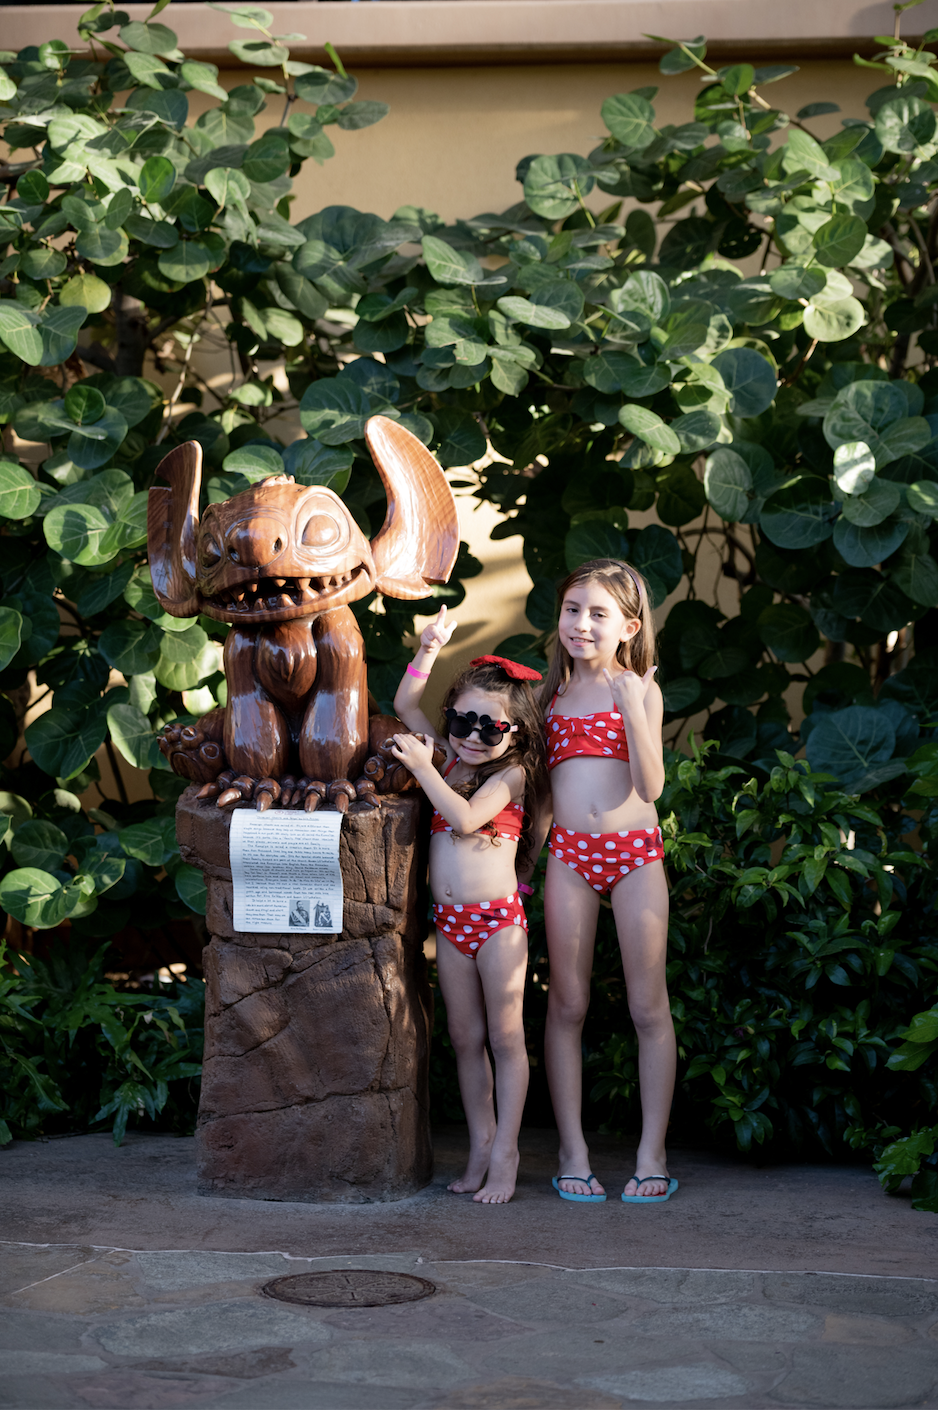 Stitch-Statue-Disney's Aulani Most Instagram-Worthy Spots-Stitch Statue-more affordable than you think-deals-family travel-Hawaii